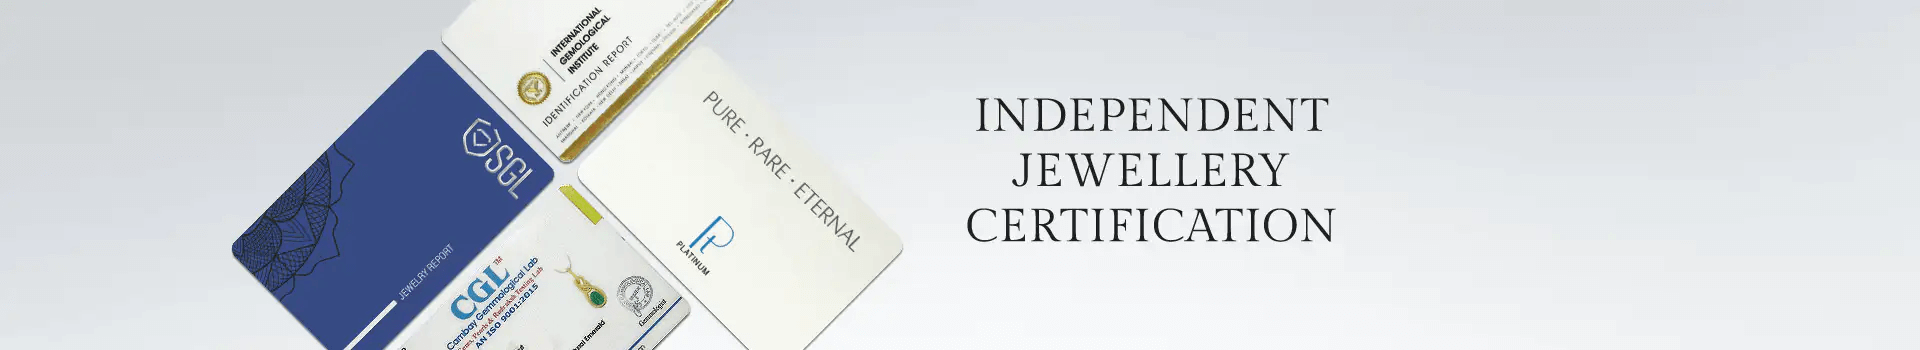 only certified jewellery